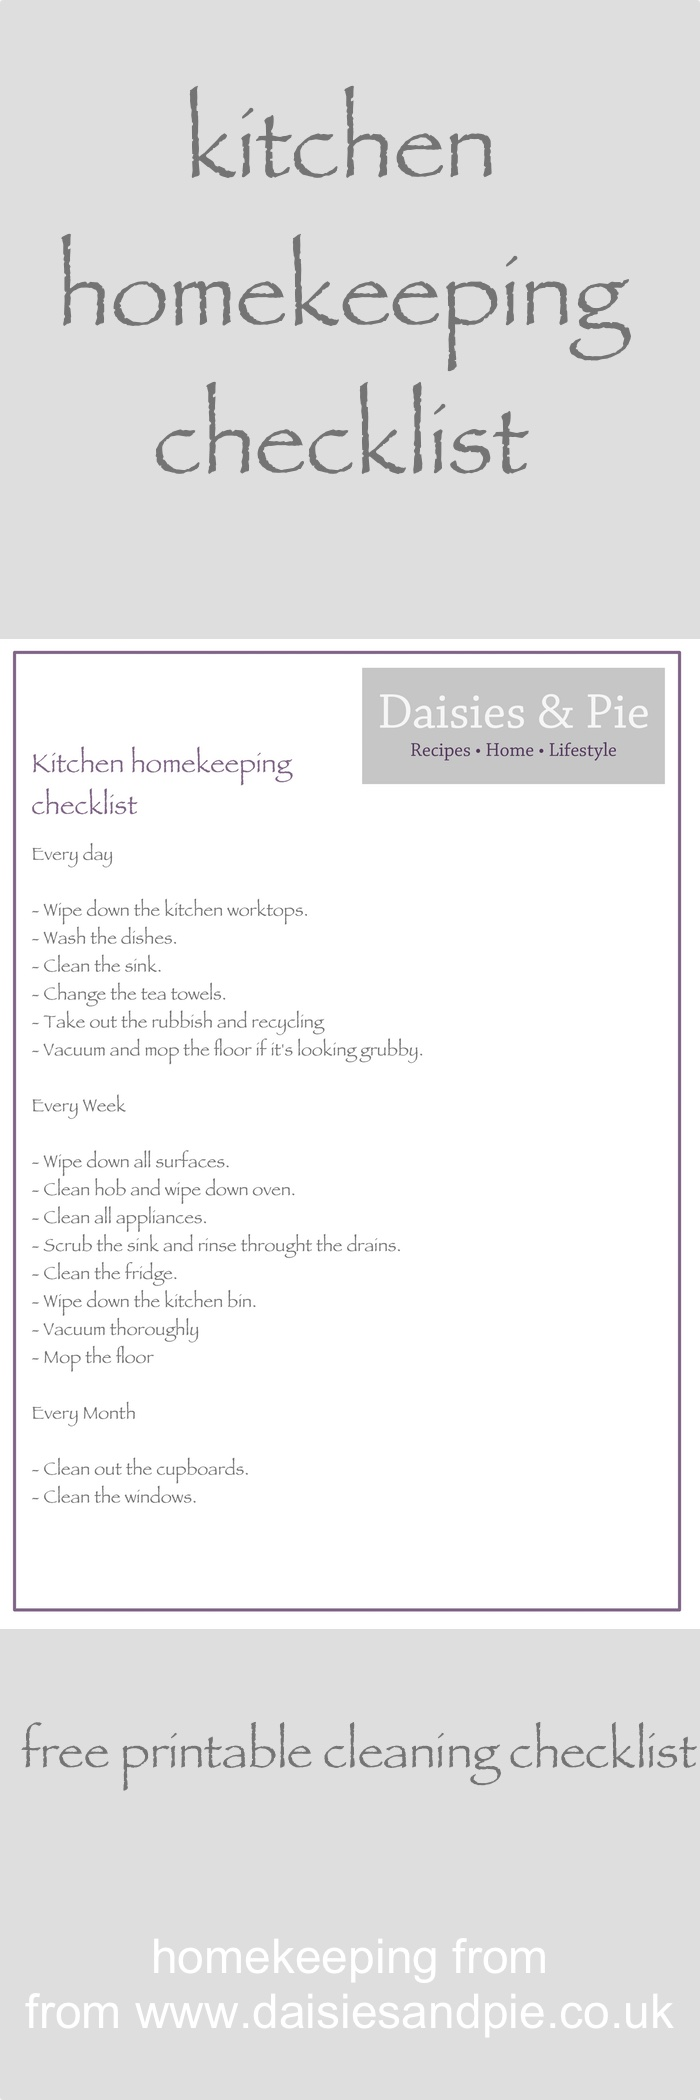 Kitchen homekeeping – daily, weekly and monthly | Pinterest ...